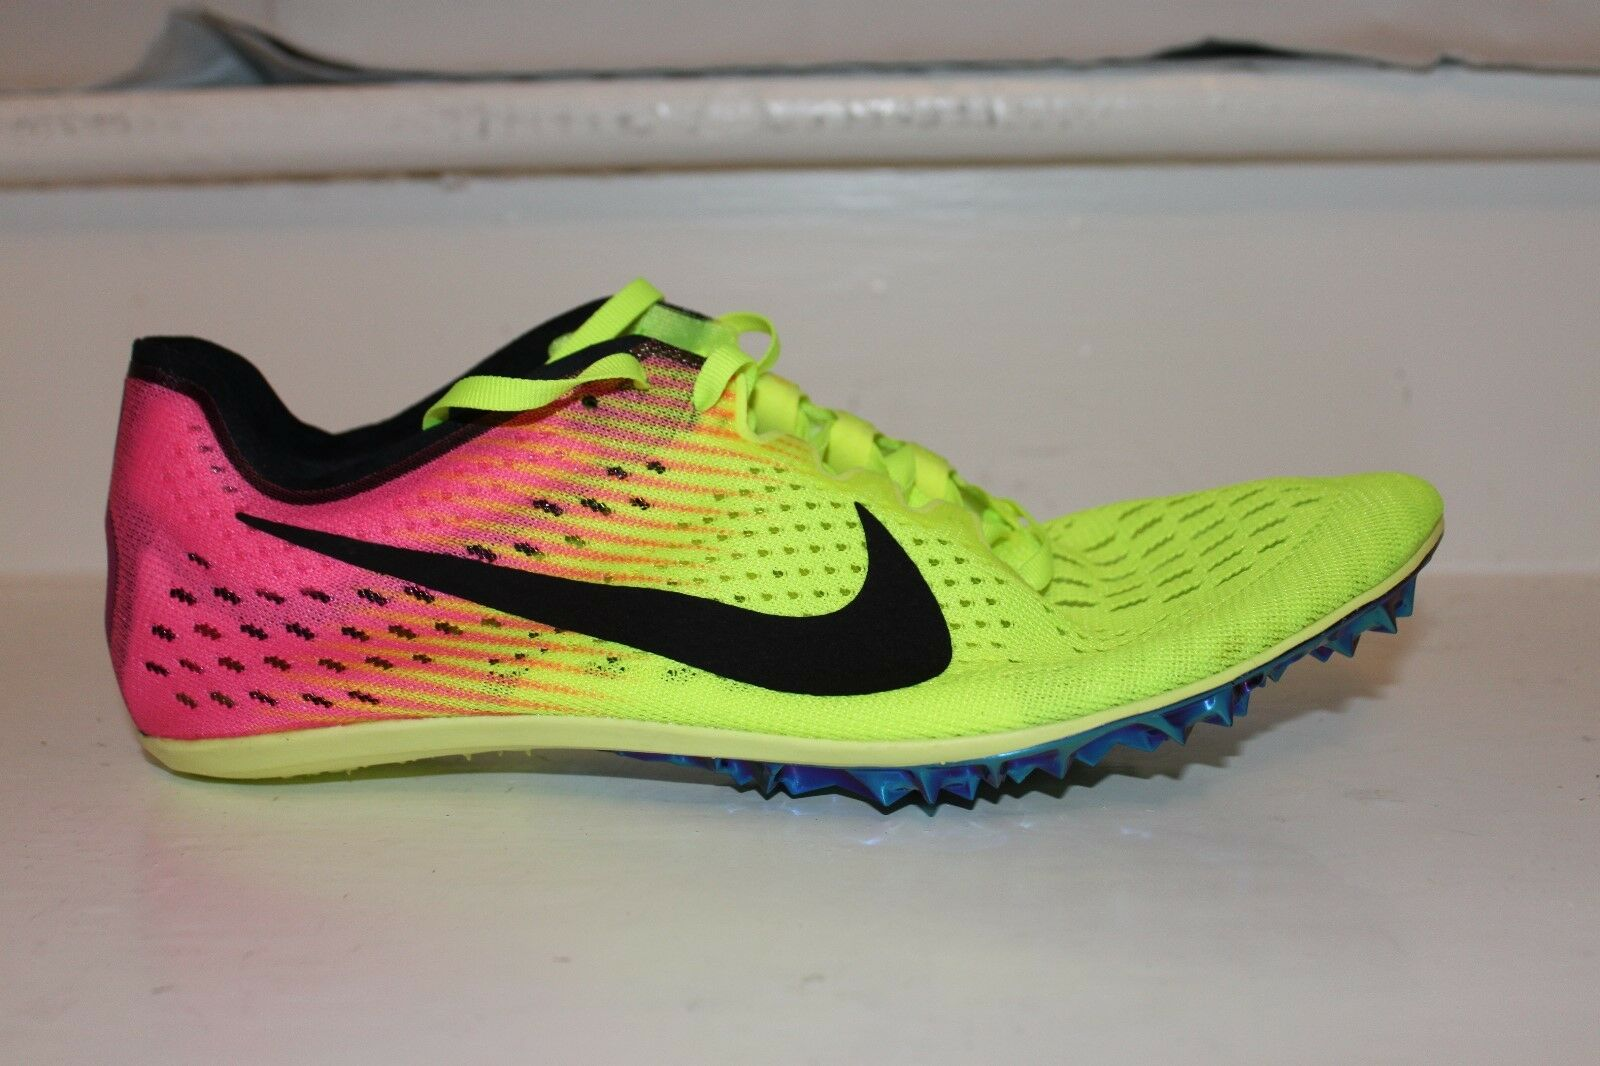 Nike Zoom Victory 3 Laufen Spikes Schuhe Flymesh Ombre Msrp Neu